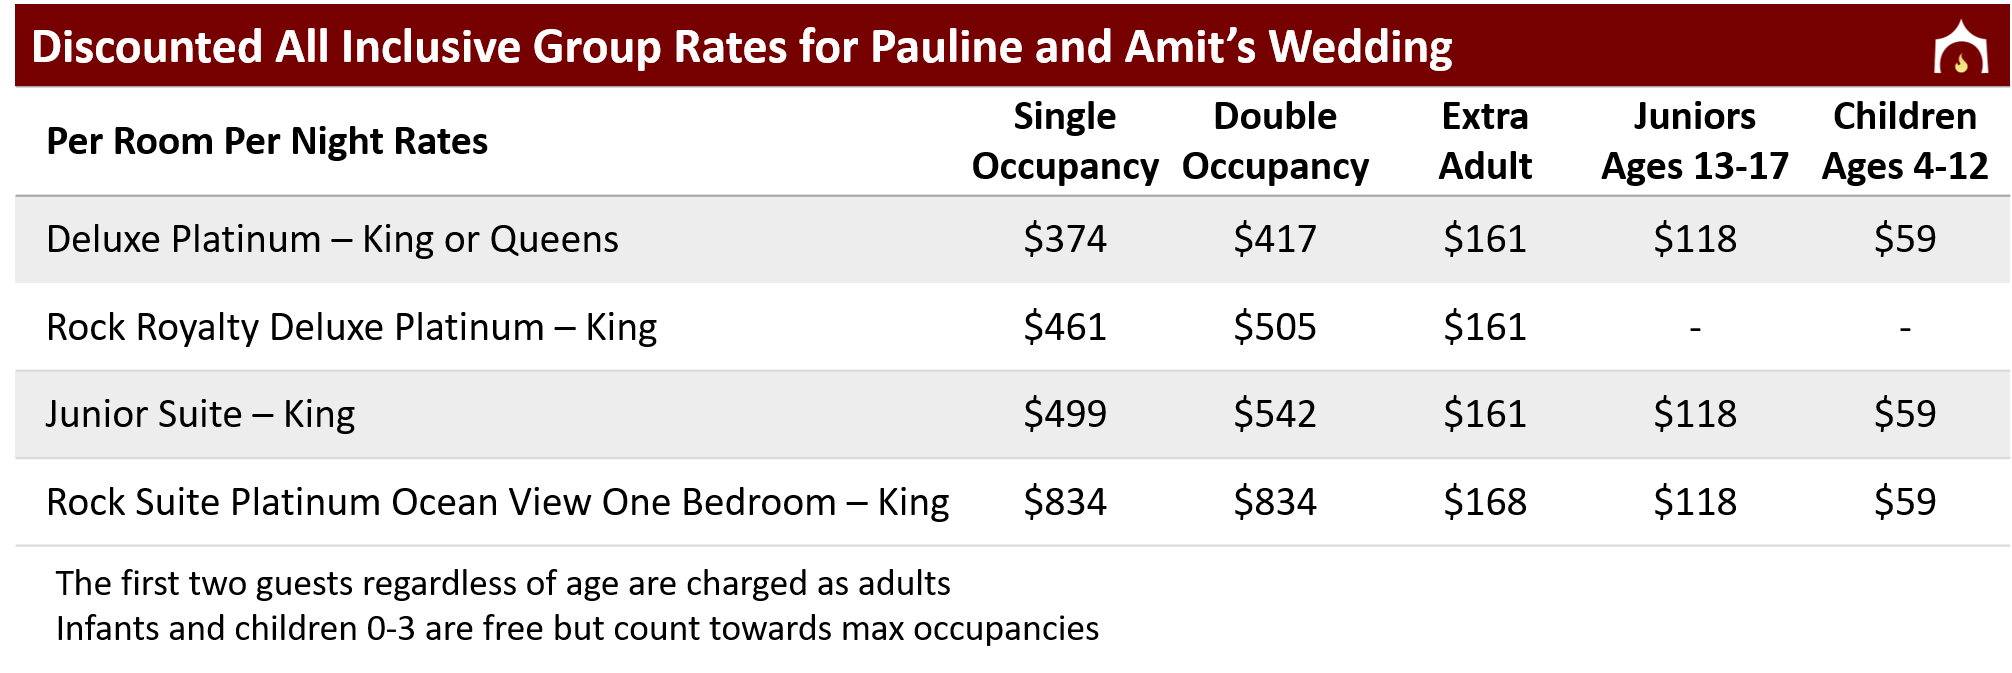 Discounted Group Rate - Pauline and Amit.png